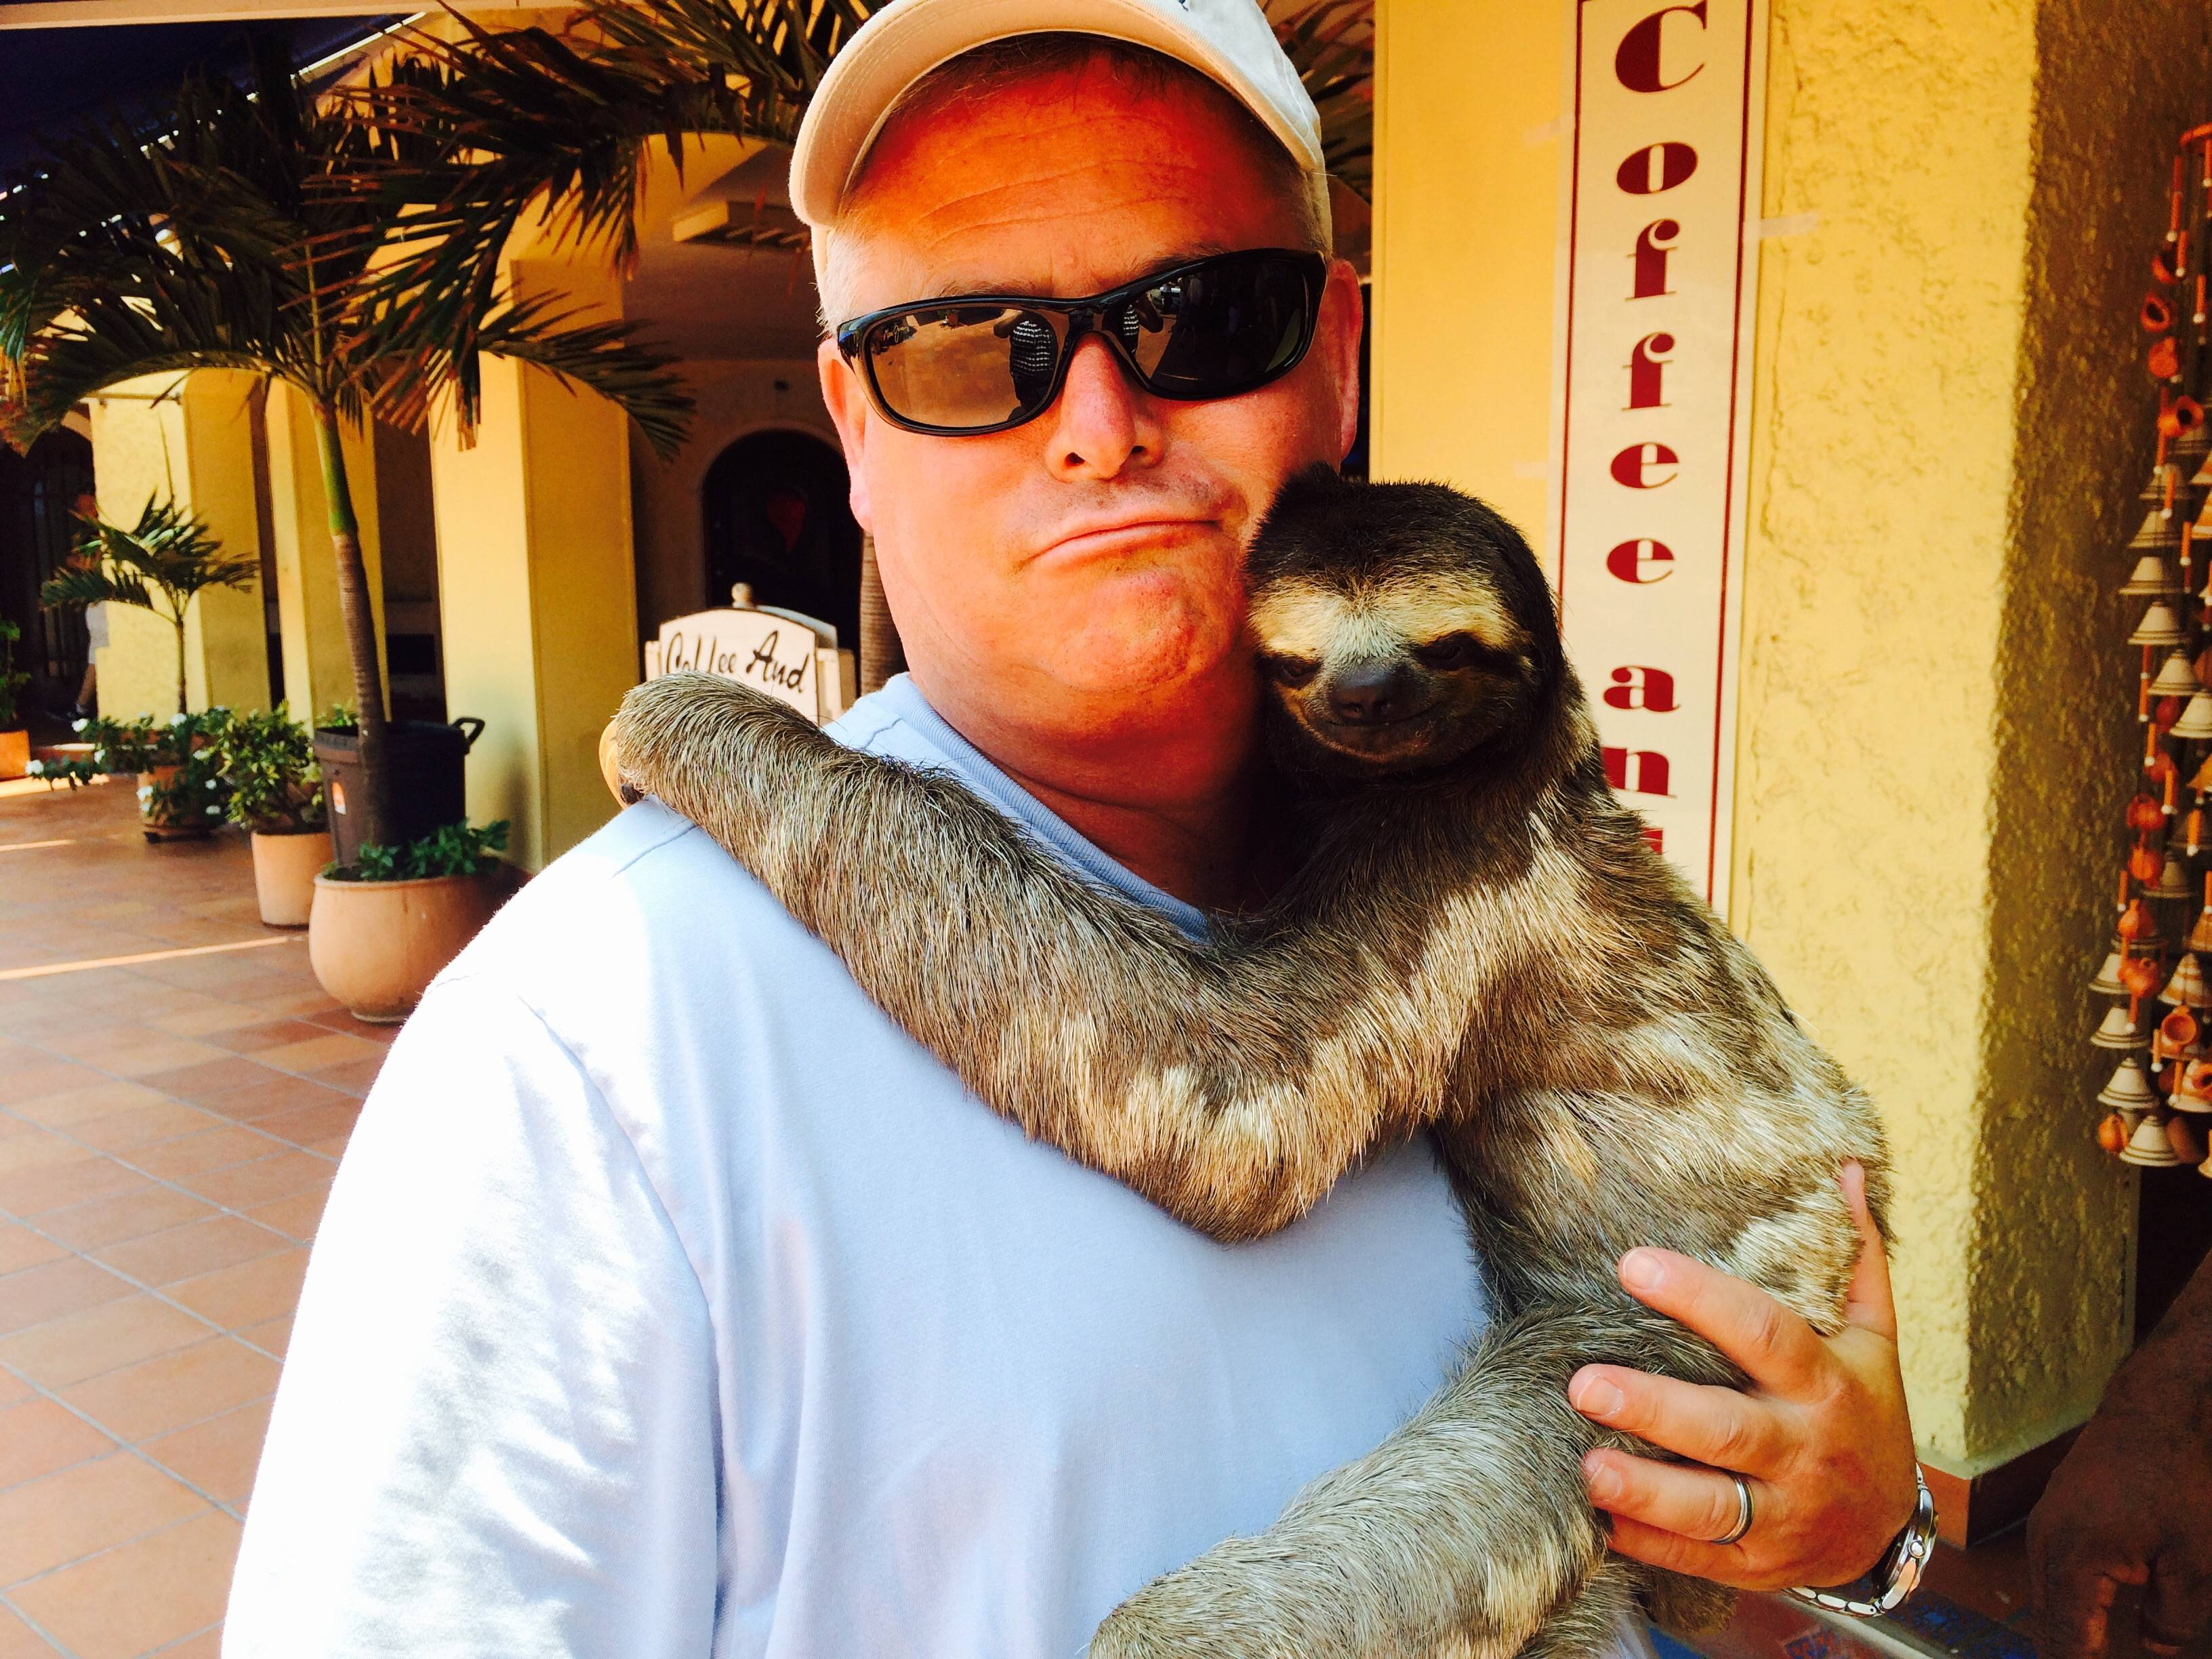 Dad with a sloth. Super jealous.